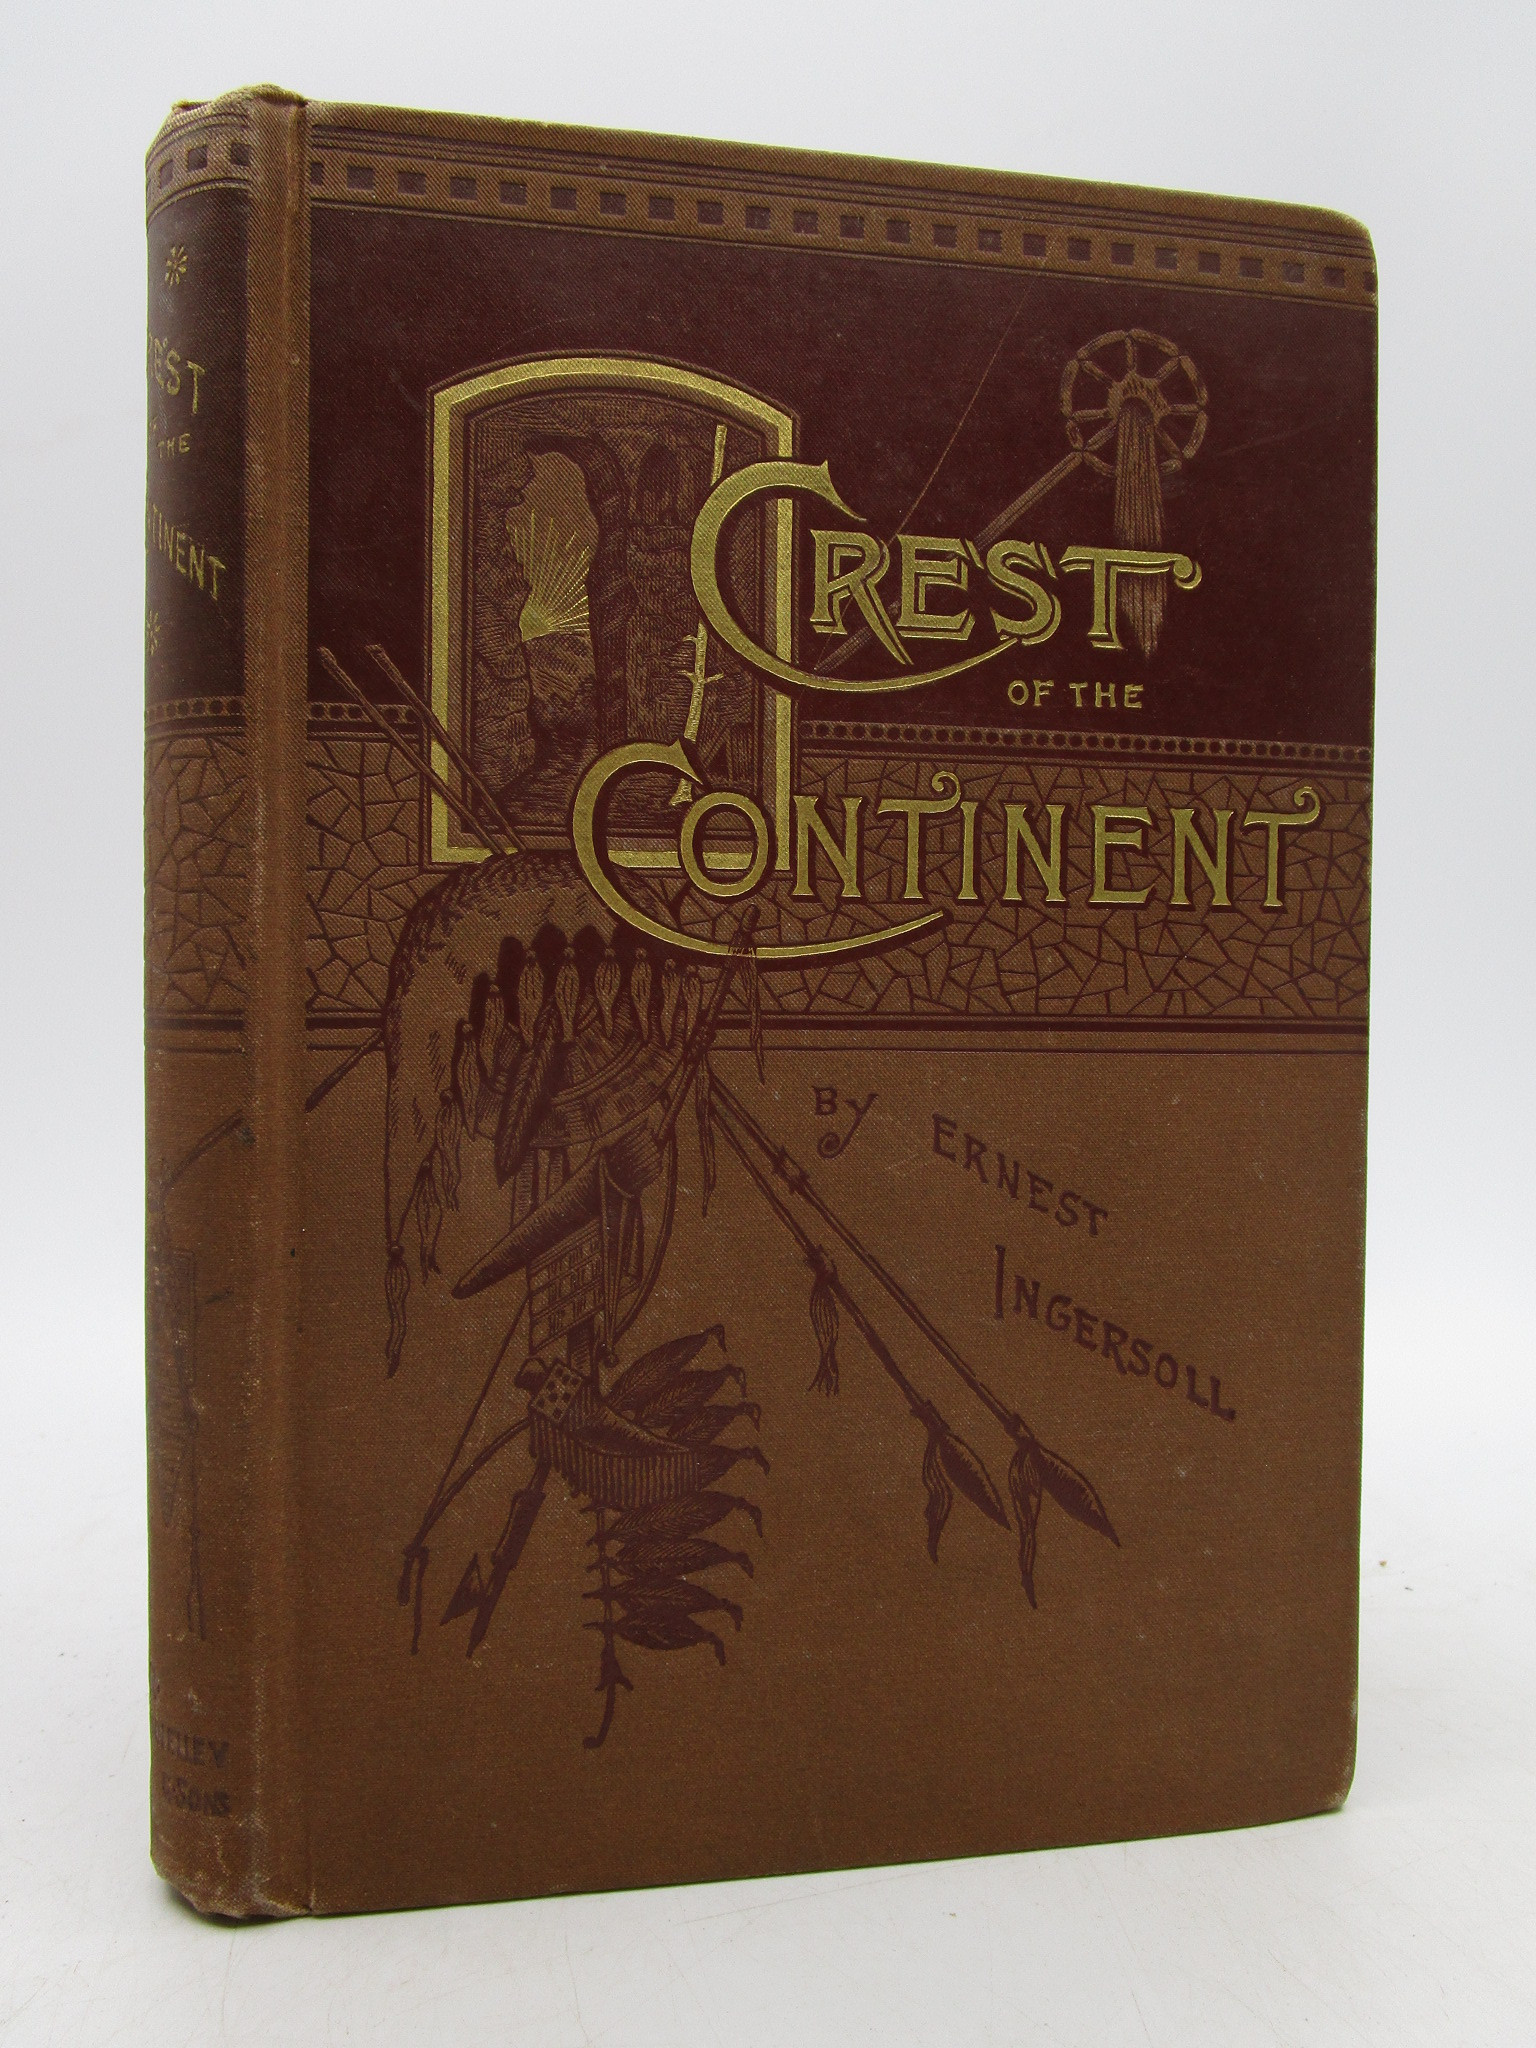 Image for The Crest of the Continent: A Record of a Summer's Ramble in the Rocky Mountains and Beyond (First Edition)